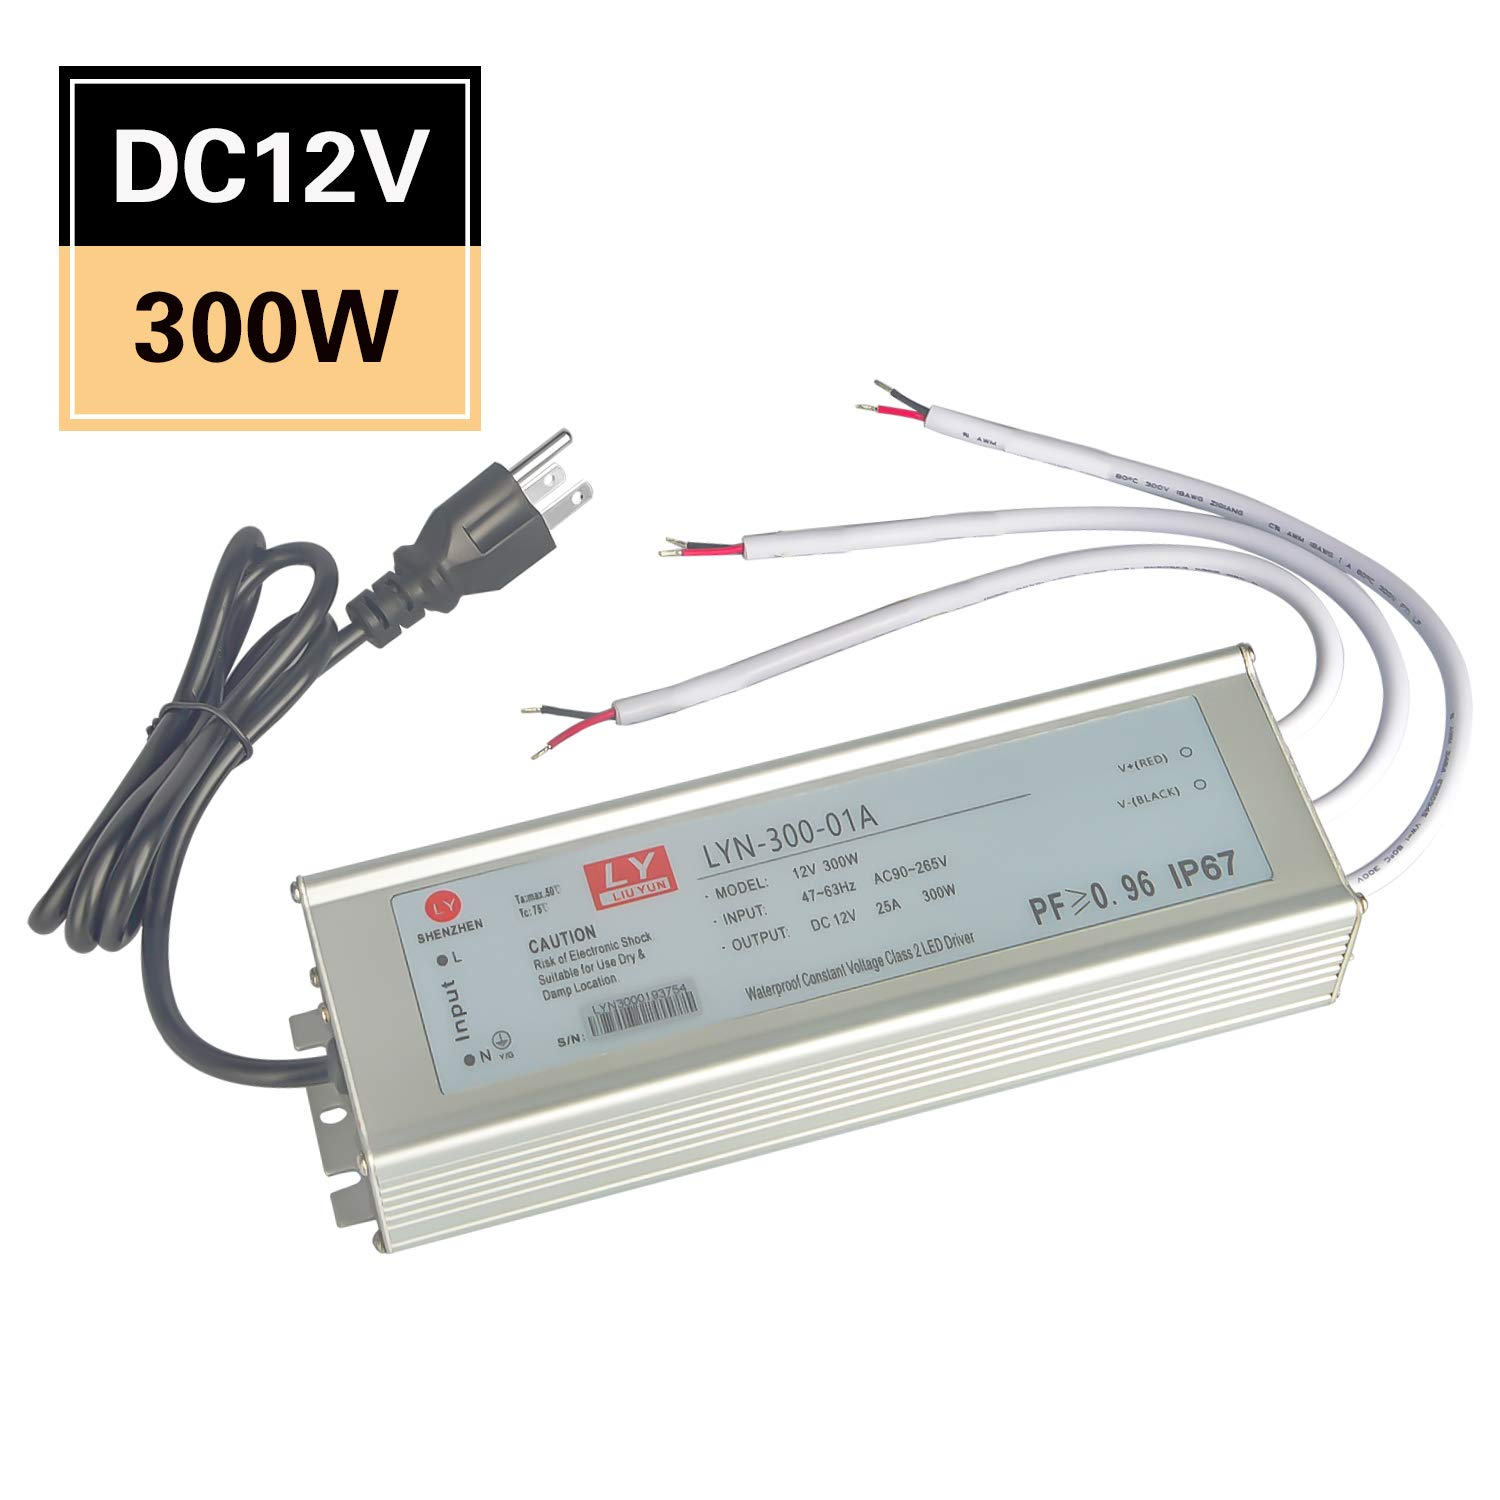 LED Driver 300Watt(100W X3) 25A, Waterproof IP67 Power Transformer Adapter, 90V-265V AC to 12V DC, Low Voltage Output, with US Standard 3 Plugs for LED Lights, Computer Projects, Outdoor Lights.